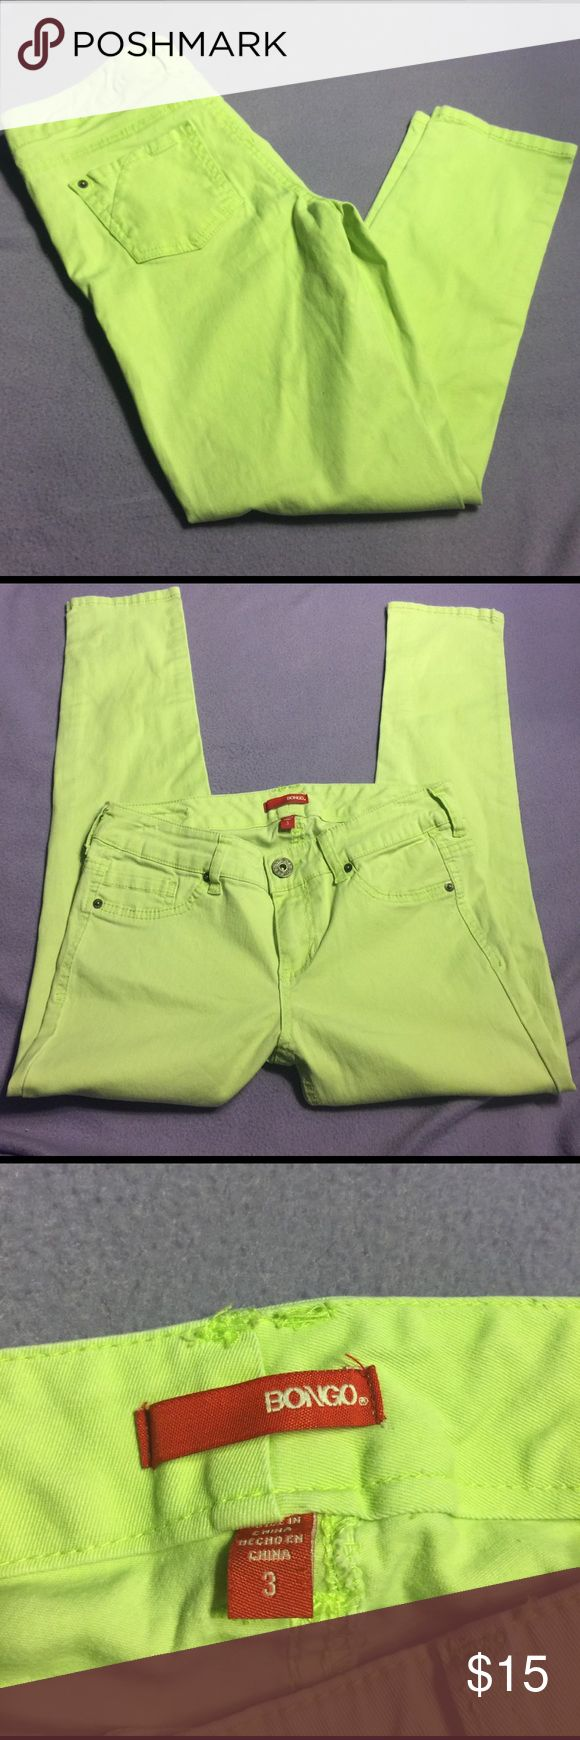 BNWOT Bongo lime green SZ 3 skinny jeans juniors Brand new without tags size 3 juniors Bongo pastelish lime green skinny jeans. Have a slight stretch but not much. Perfect splash of color BONGO Pants Skinny